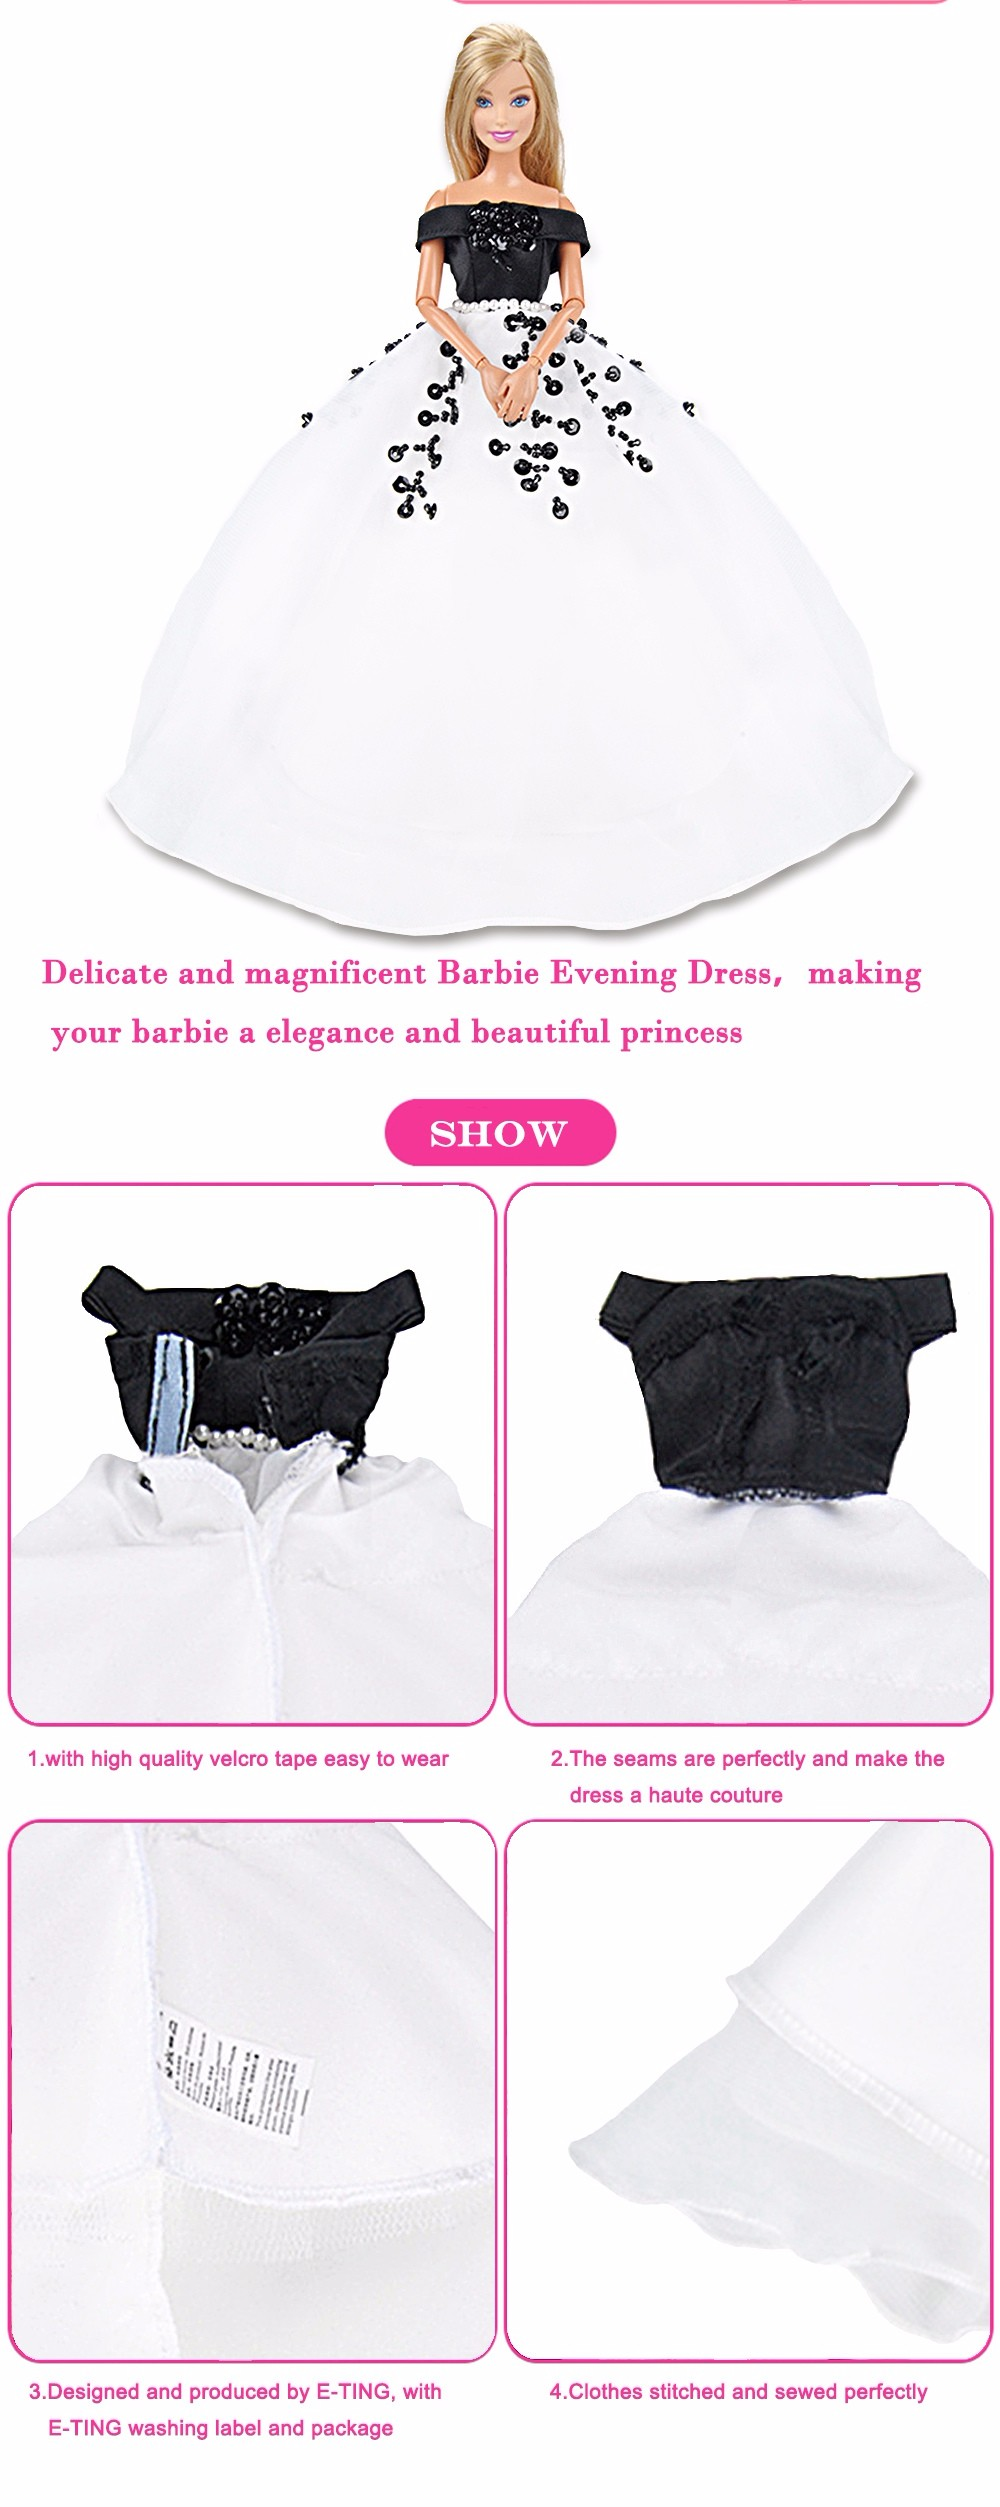 E-TING Dolls Garments Promenade Costume White Lace Marriage ceremony Night Social gathering Robe For Barbie Doll